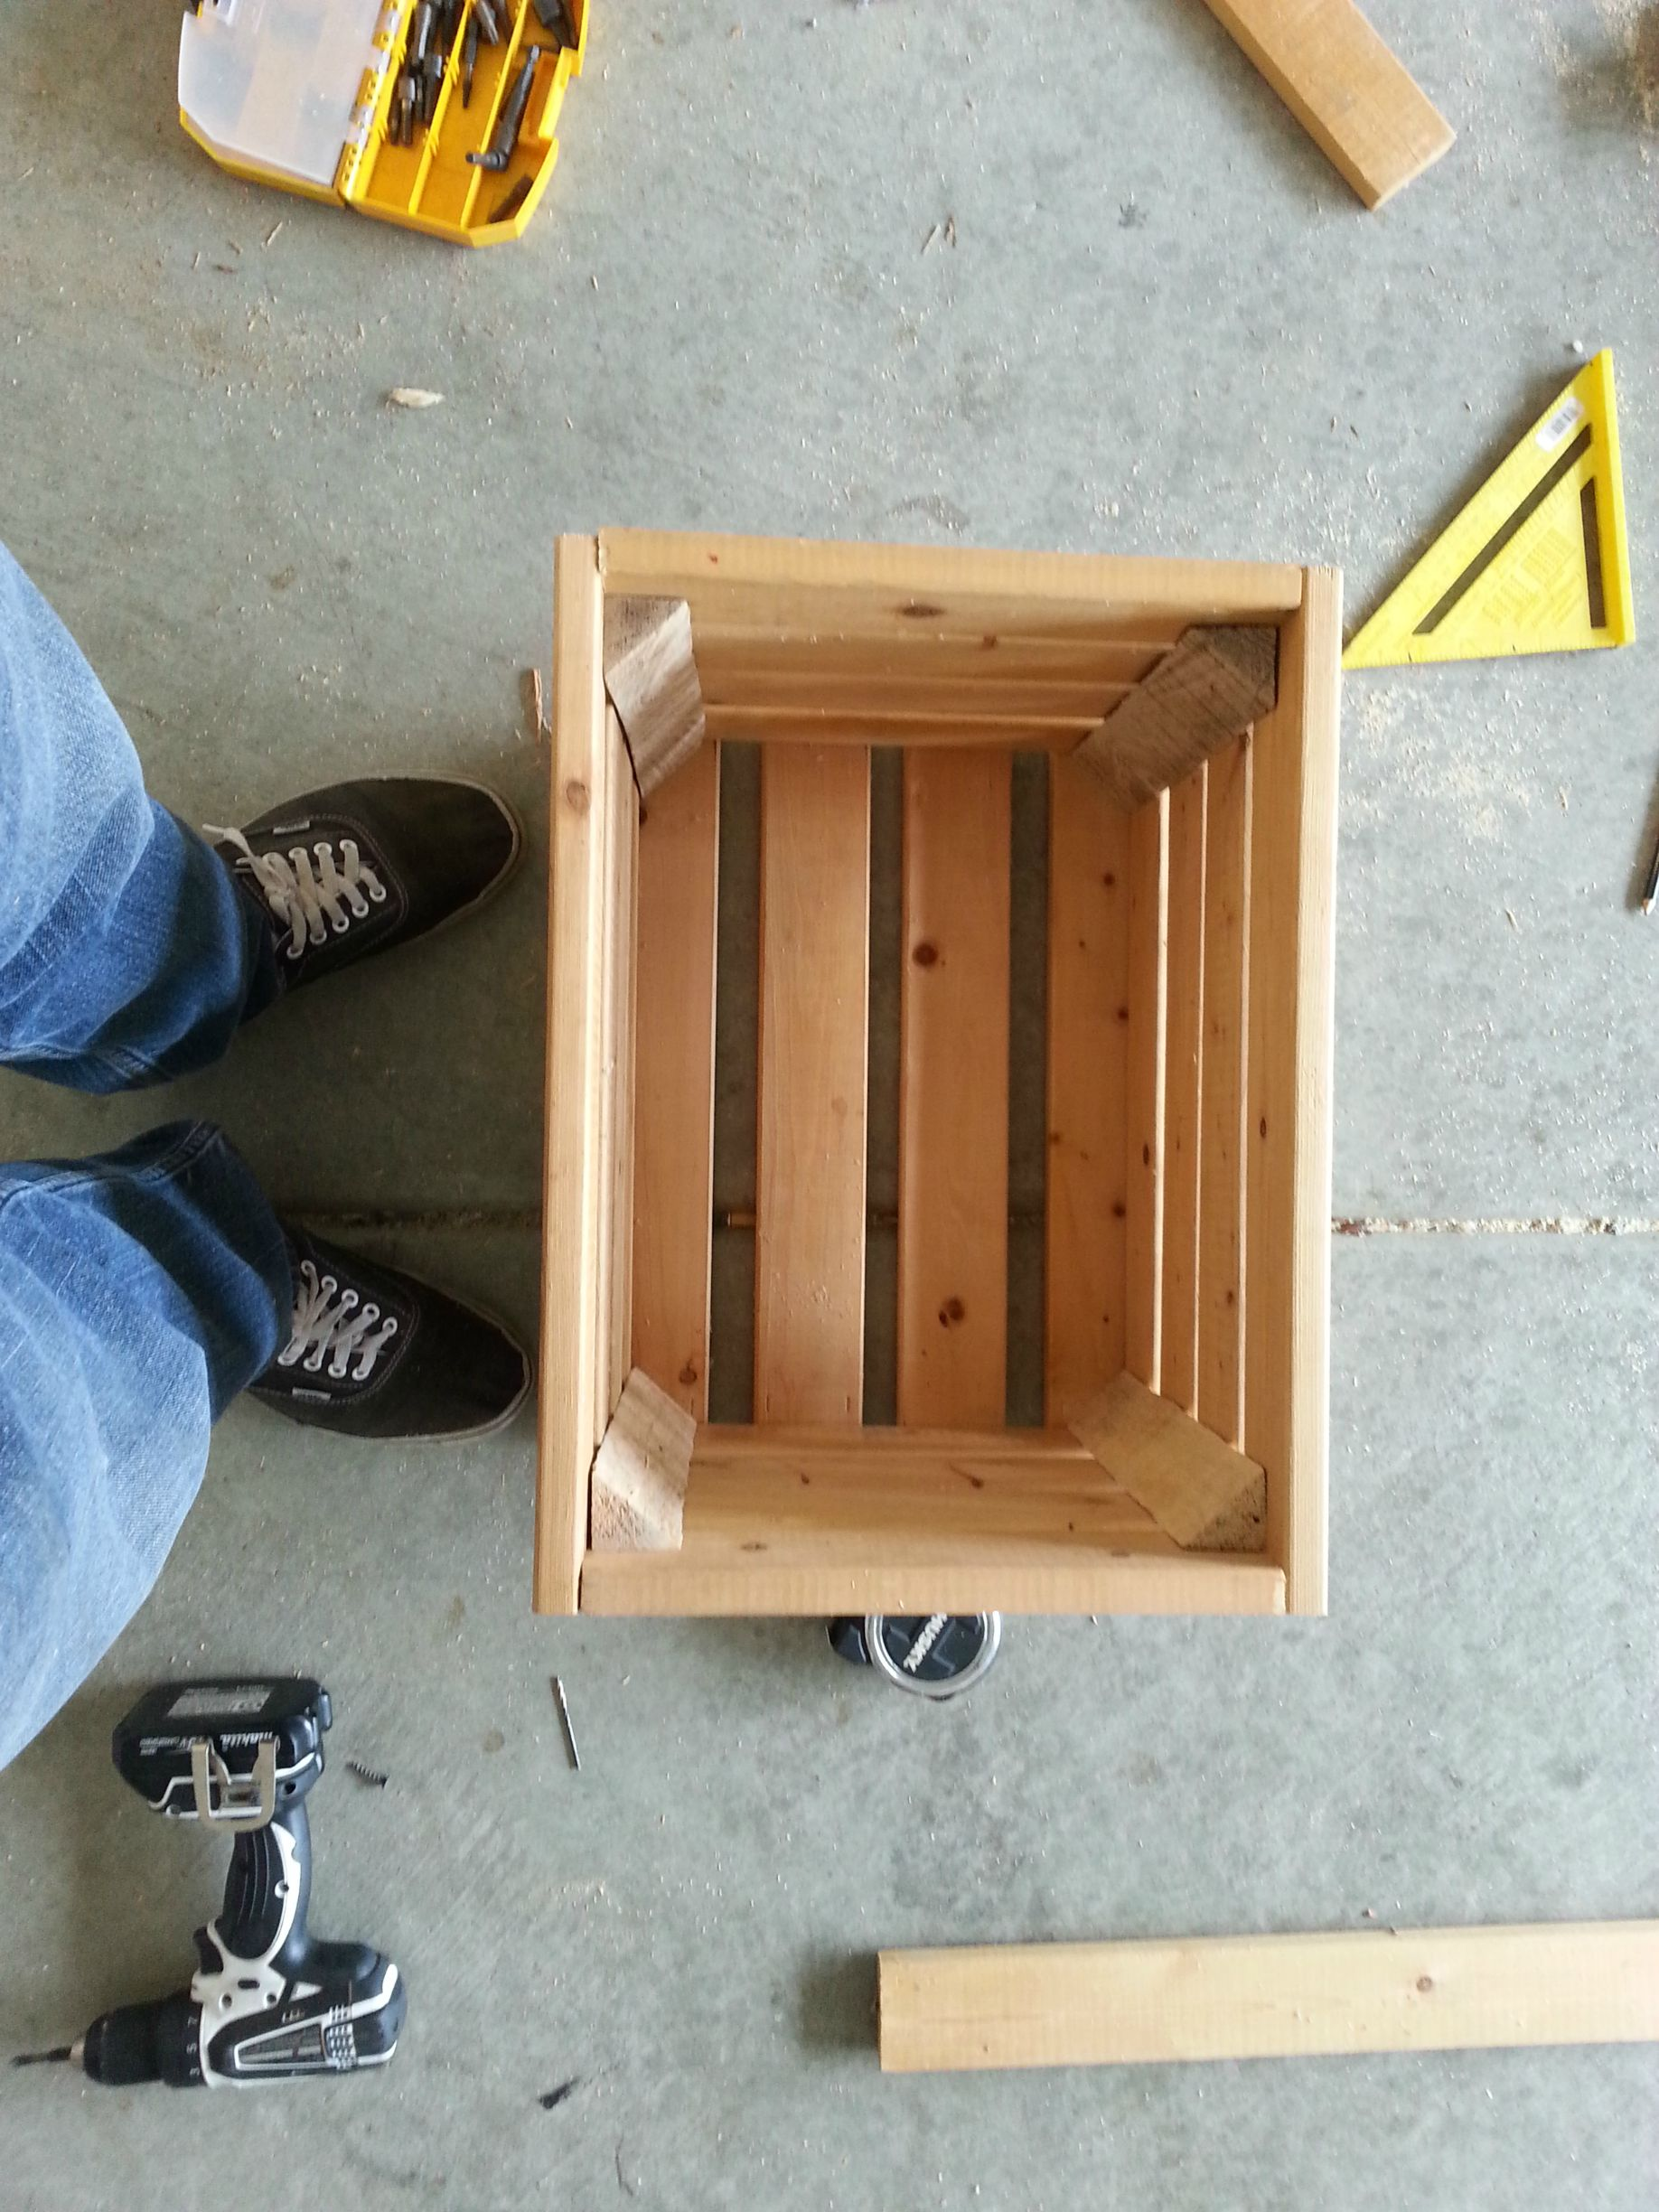 Guy Builds His Wife A Functional Wine Crate Table Set From Scratch For Less Than $100